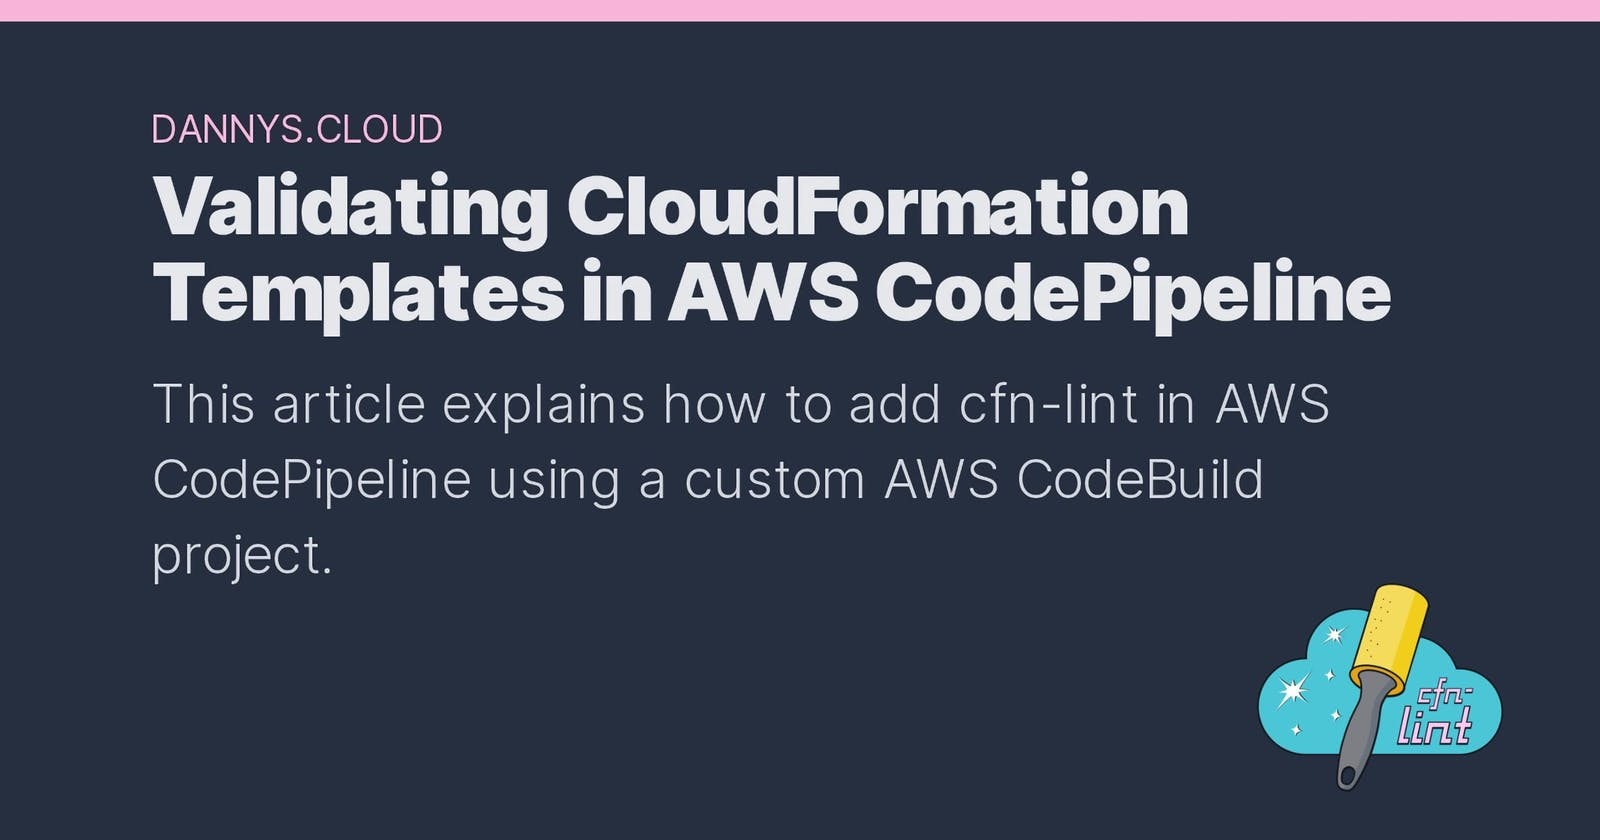 Validating CloudFormation Templates in AWS CodePipeline